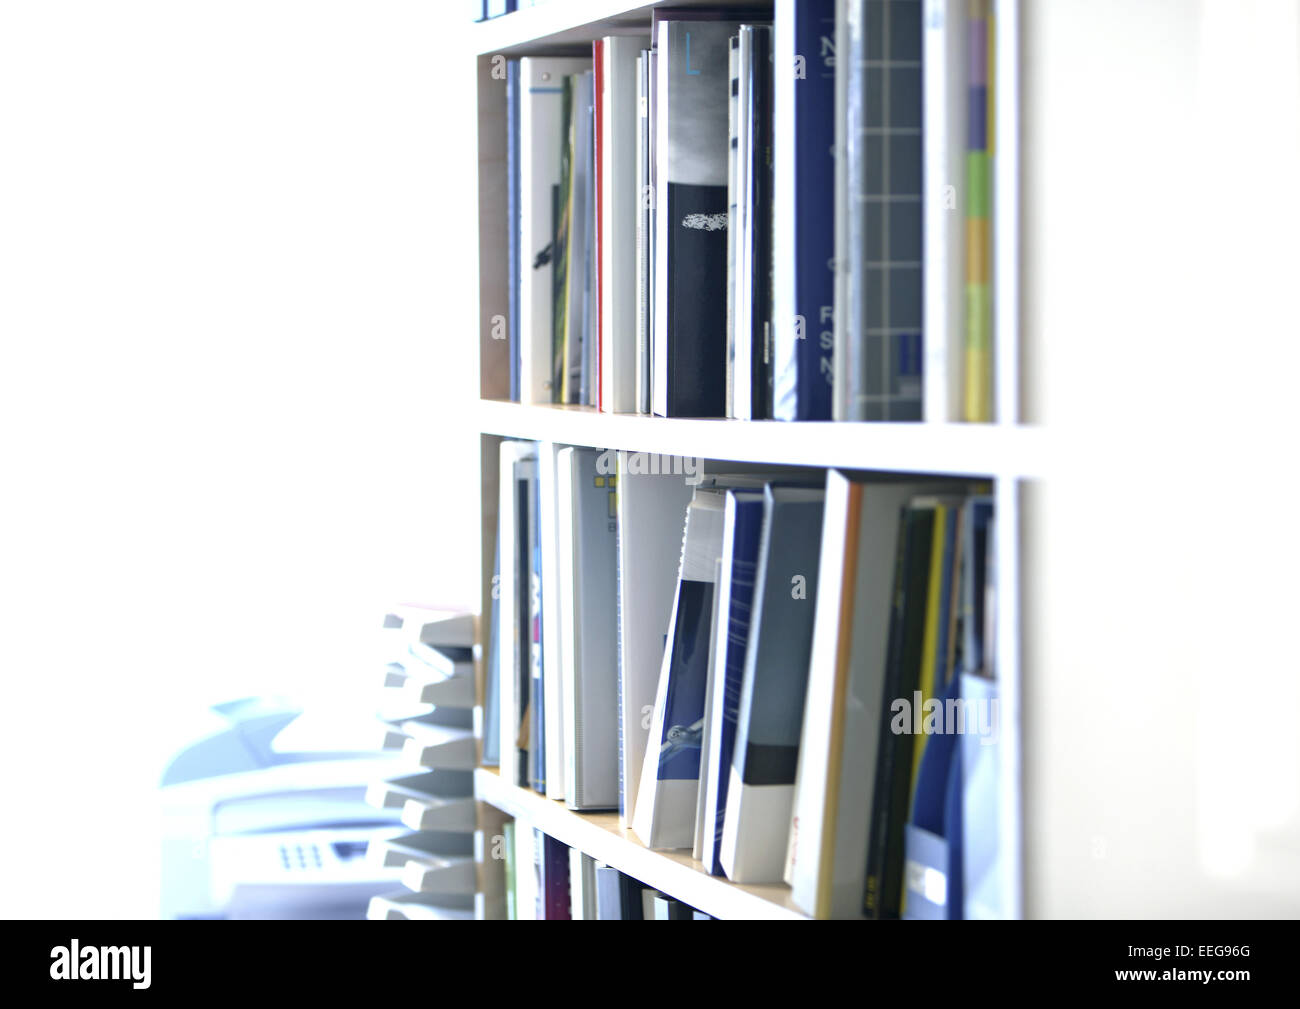 Schraenke High Resolution Stock Photography And Images Alamy